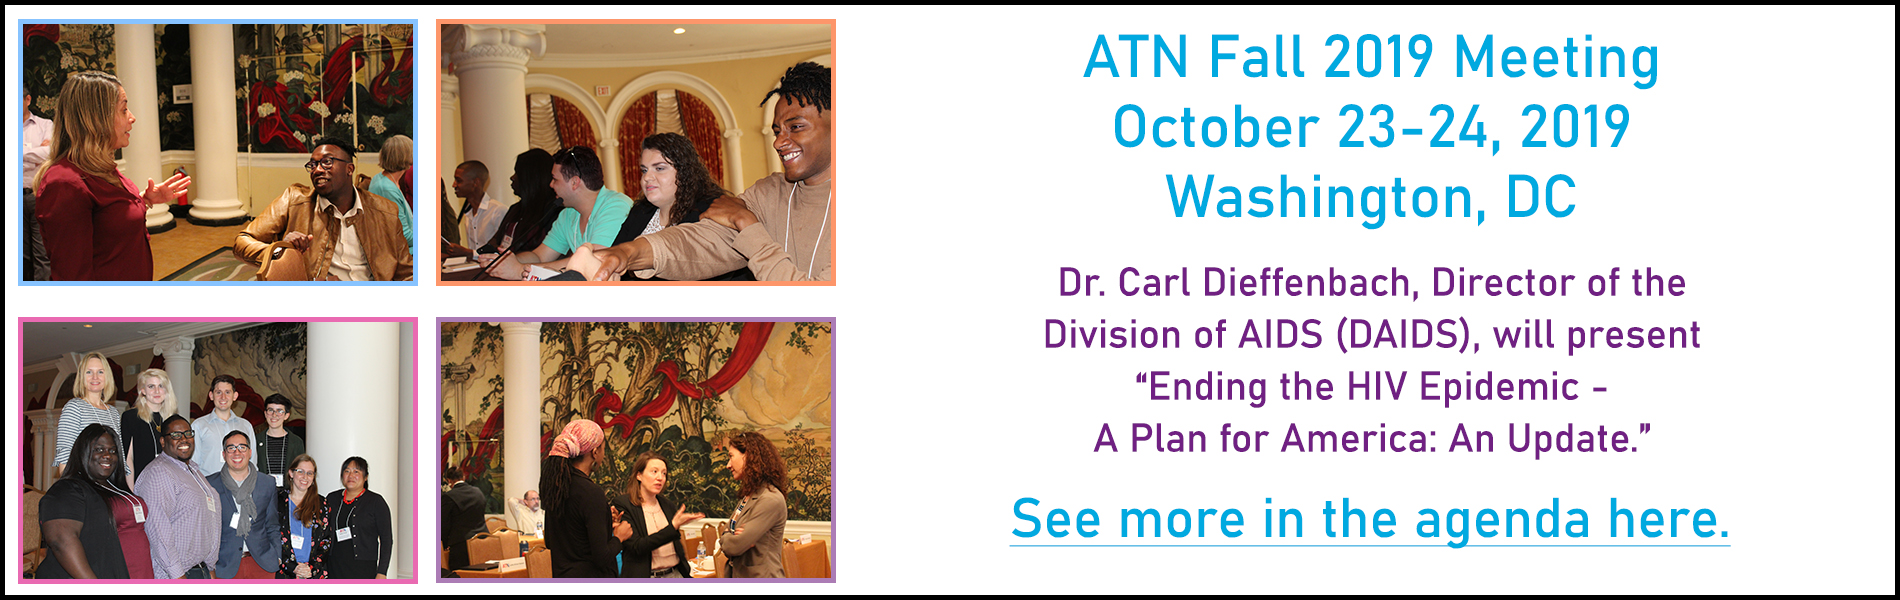 ATN Fall 2019, Meeting October 23-24, 2019 Washington, DC. Dr. Carl Dieffenbach, Director of the  Division of AIDS (DAIDS), will present Ending the HIV Epidemic - A Plan for America: An Update. See more in the agenda here.